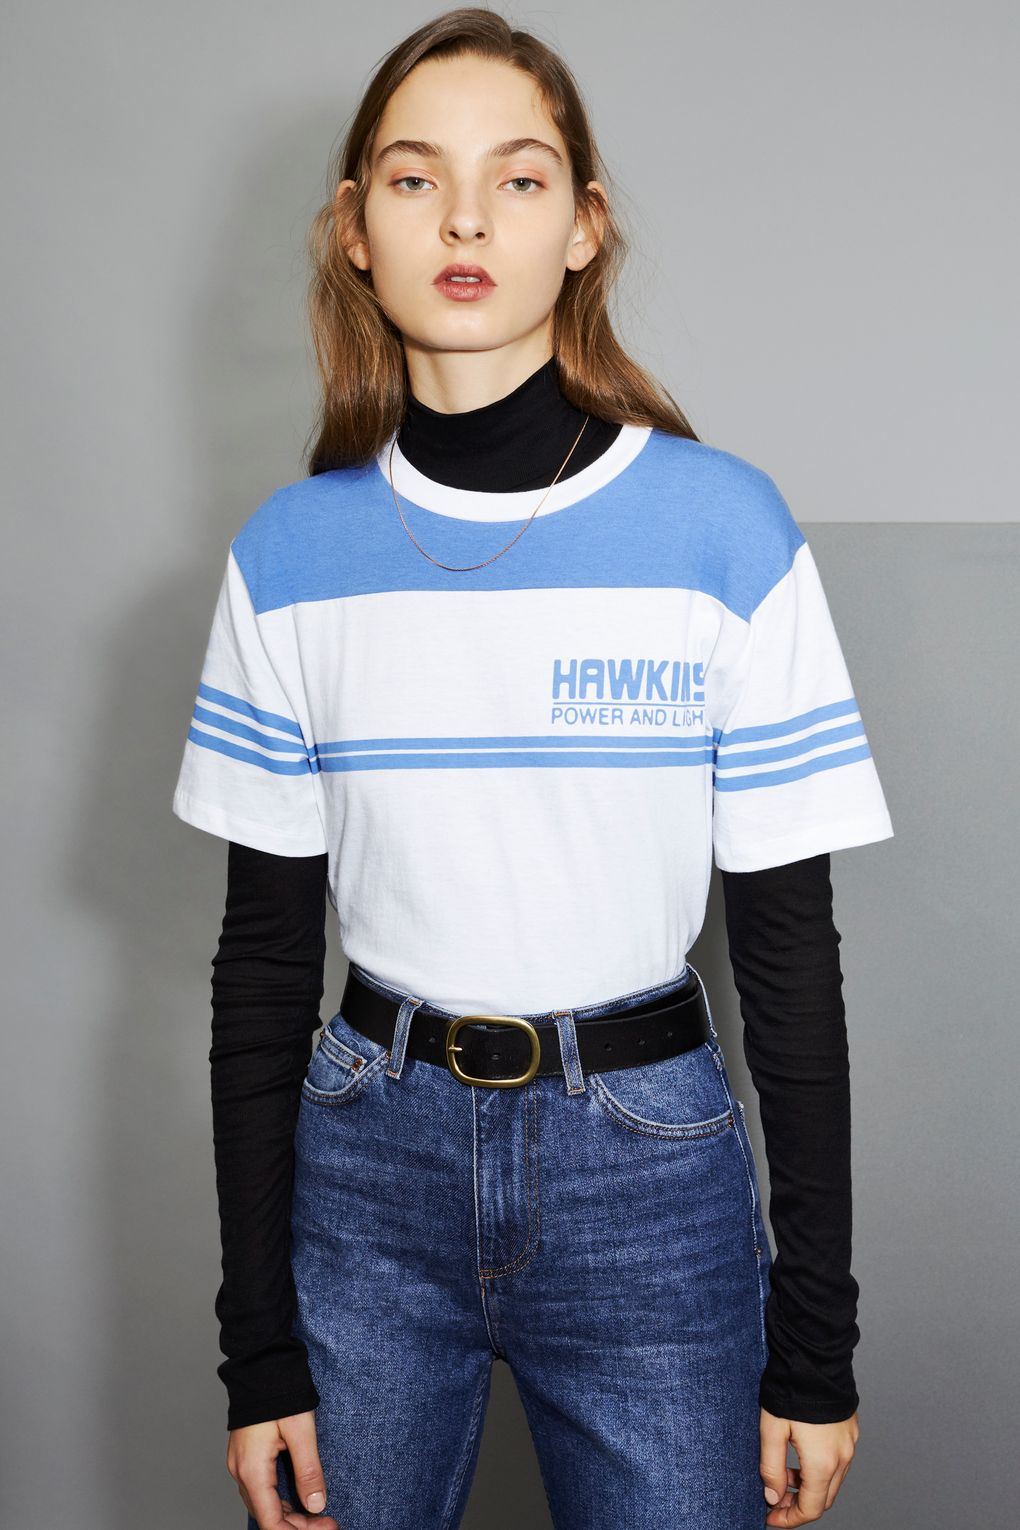 Vintage Whimsical Stranger Things Capsule by Top Shop